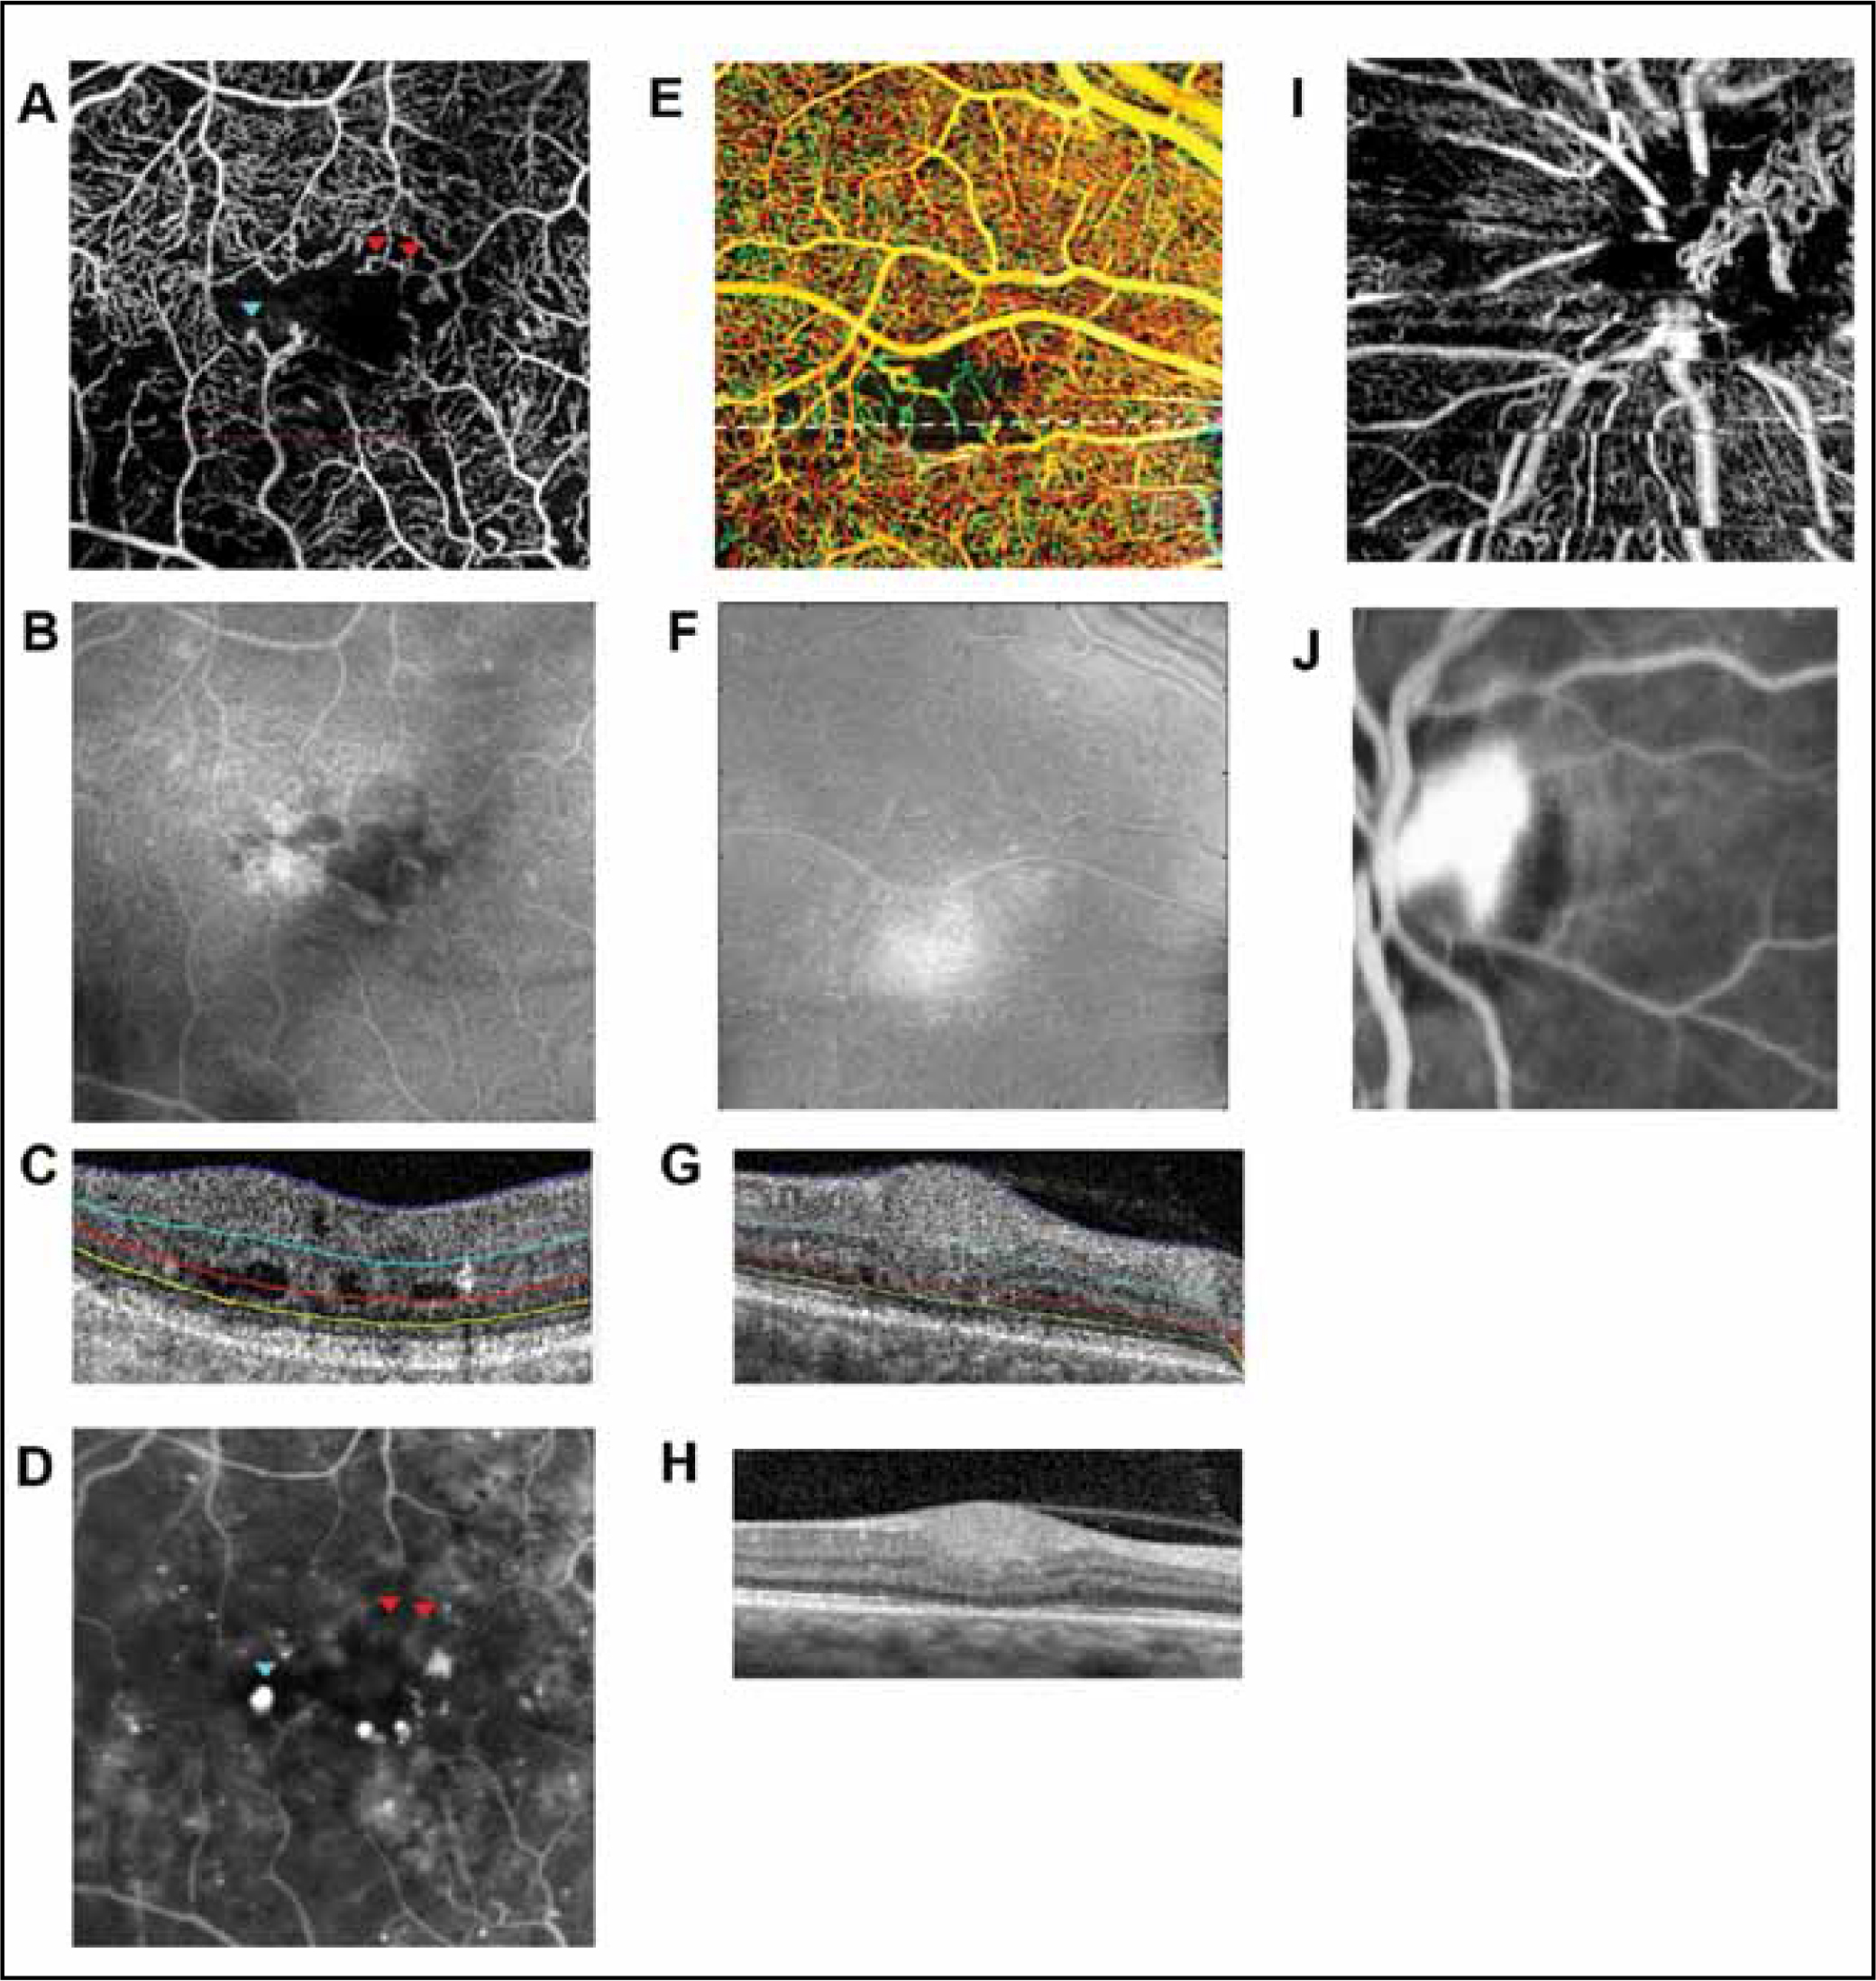 Swept-source optical coherence tomography angiography (SS-OCTA) scans of diabetic subjects exemplifying typical findings seen in diabetic retinopathy. (A) Inner-retinal SS-OCTA of a diabetic subject with impaired vascular perfusion, intraretinal vascular looping (red arrowheads), and a microaneurysm (cyan arrowhead). (B) En face intensity SS-OCT scan of the inner retina corresponding to the SS-OCTA in above panel demonstrates some artifactual changes in reflectivity; however, the SS-OCTA findings are largely unchanged. (C) SS-OCT B-scan through red dotted line in (A) with segmentation of the inner retinal layer between the blue and cyan lines. (D) Fluorescein angiogram of the same subject and area seen in (A) with arrowheads from (A) overlaid on the image. (E) A cotton-wool spot is shown as an area of impaired vascular perfusion on a depth-encoded SS-OCTA and as a bulge in the nerve fiber layer on spectral-domain OCT (G). (F) En face intensity SS-OCT scan of the inner retina corresponding to the SS-OCTA in above panel demonstrates some artifactual changes in reflectivity; however, the SS-OCTA findings are largely unchanged. (H) SS-OCT B-scan through white dotted line in (E). (I) Inner-retinal section of a subject with neovascularization of the disc showing the neovascularization projecting out of the center of the disc. (J) Corresponding late phase fluorescein angiogram of the neovascularization.